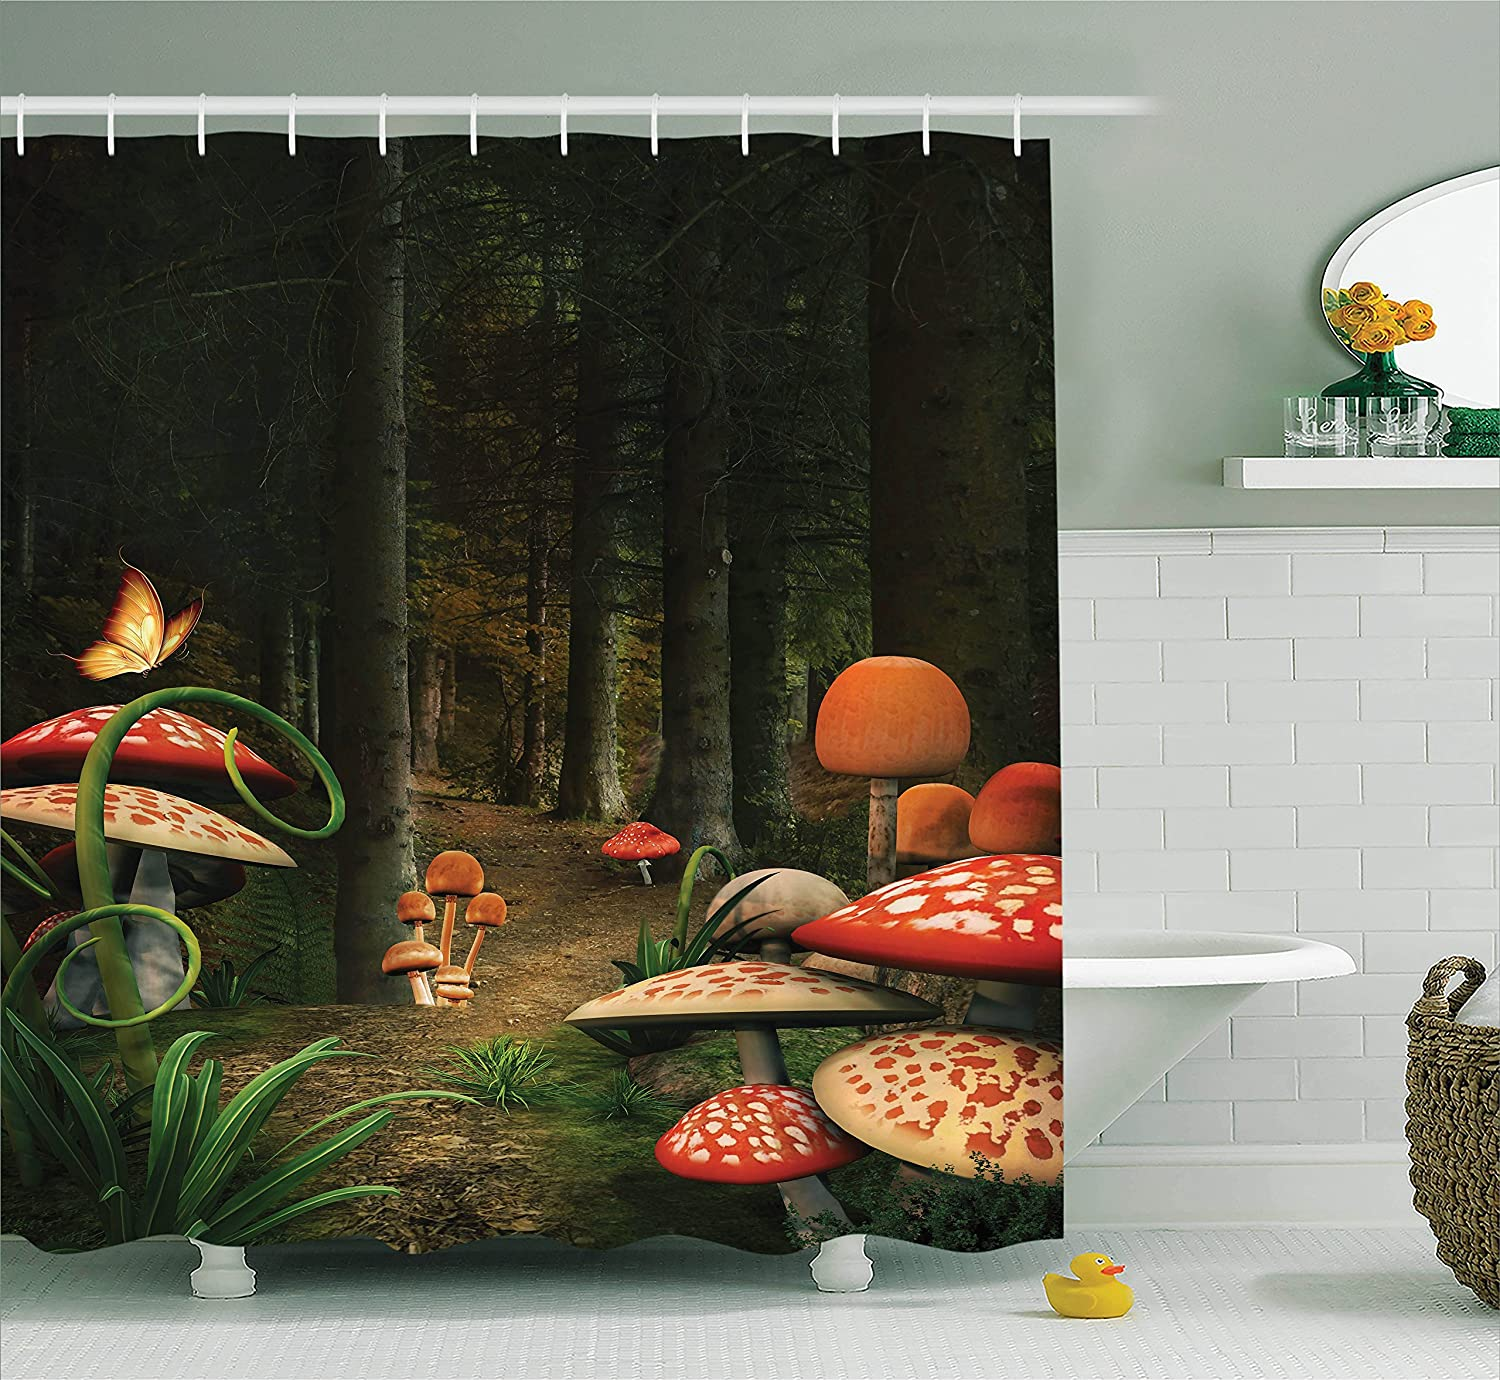 Ambesonne Mushroom Decor Shower Curtain Set, Mushrooms in The Deep Dark Forest Fantasy Nature Theme Earth Path Mystical Image, Bathroom Accessories, 69W X 70L inches, Pomegranate Green and Brown